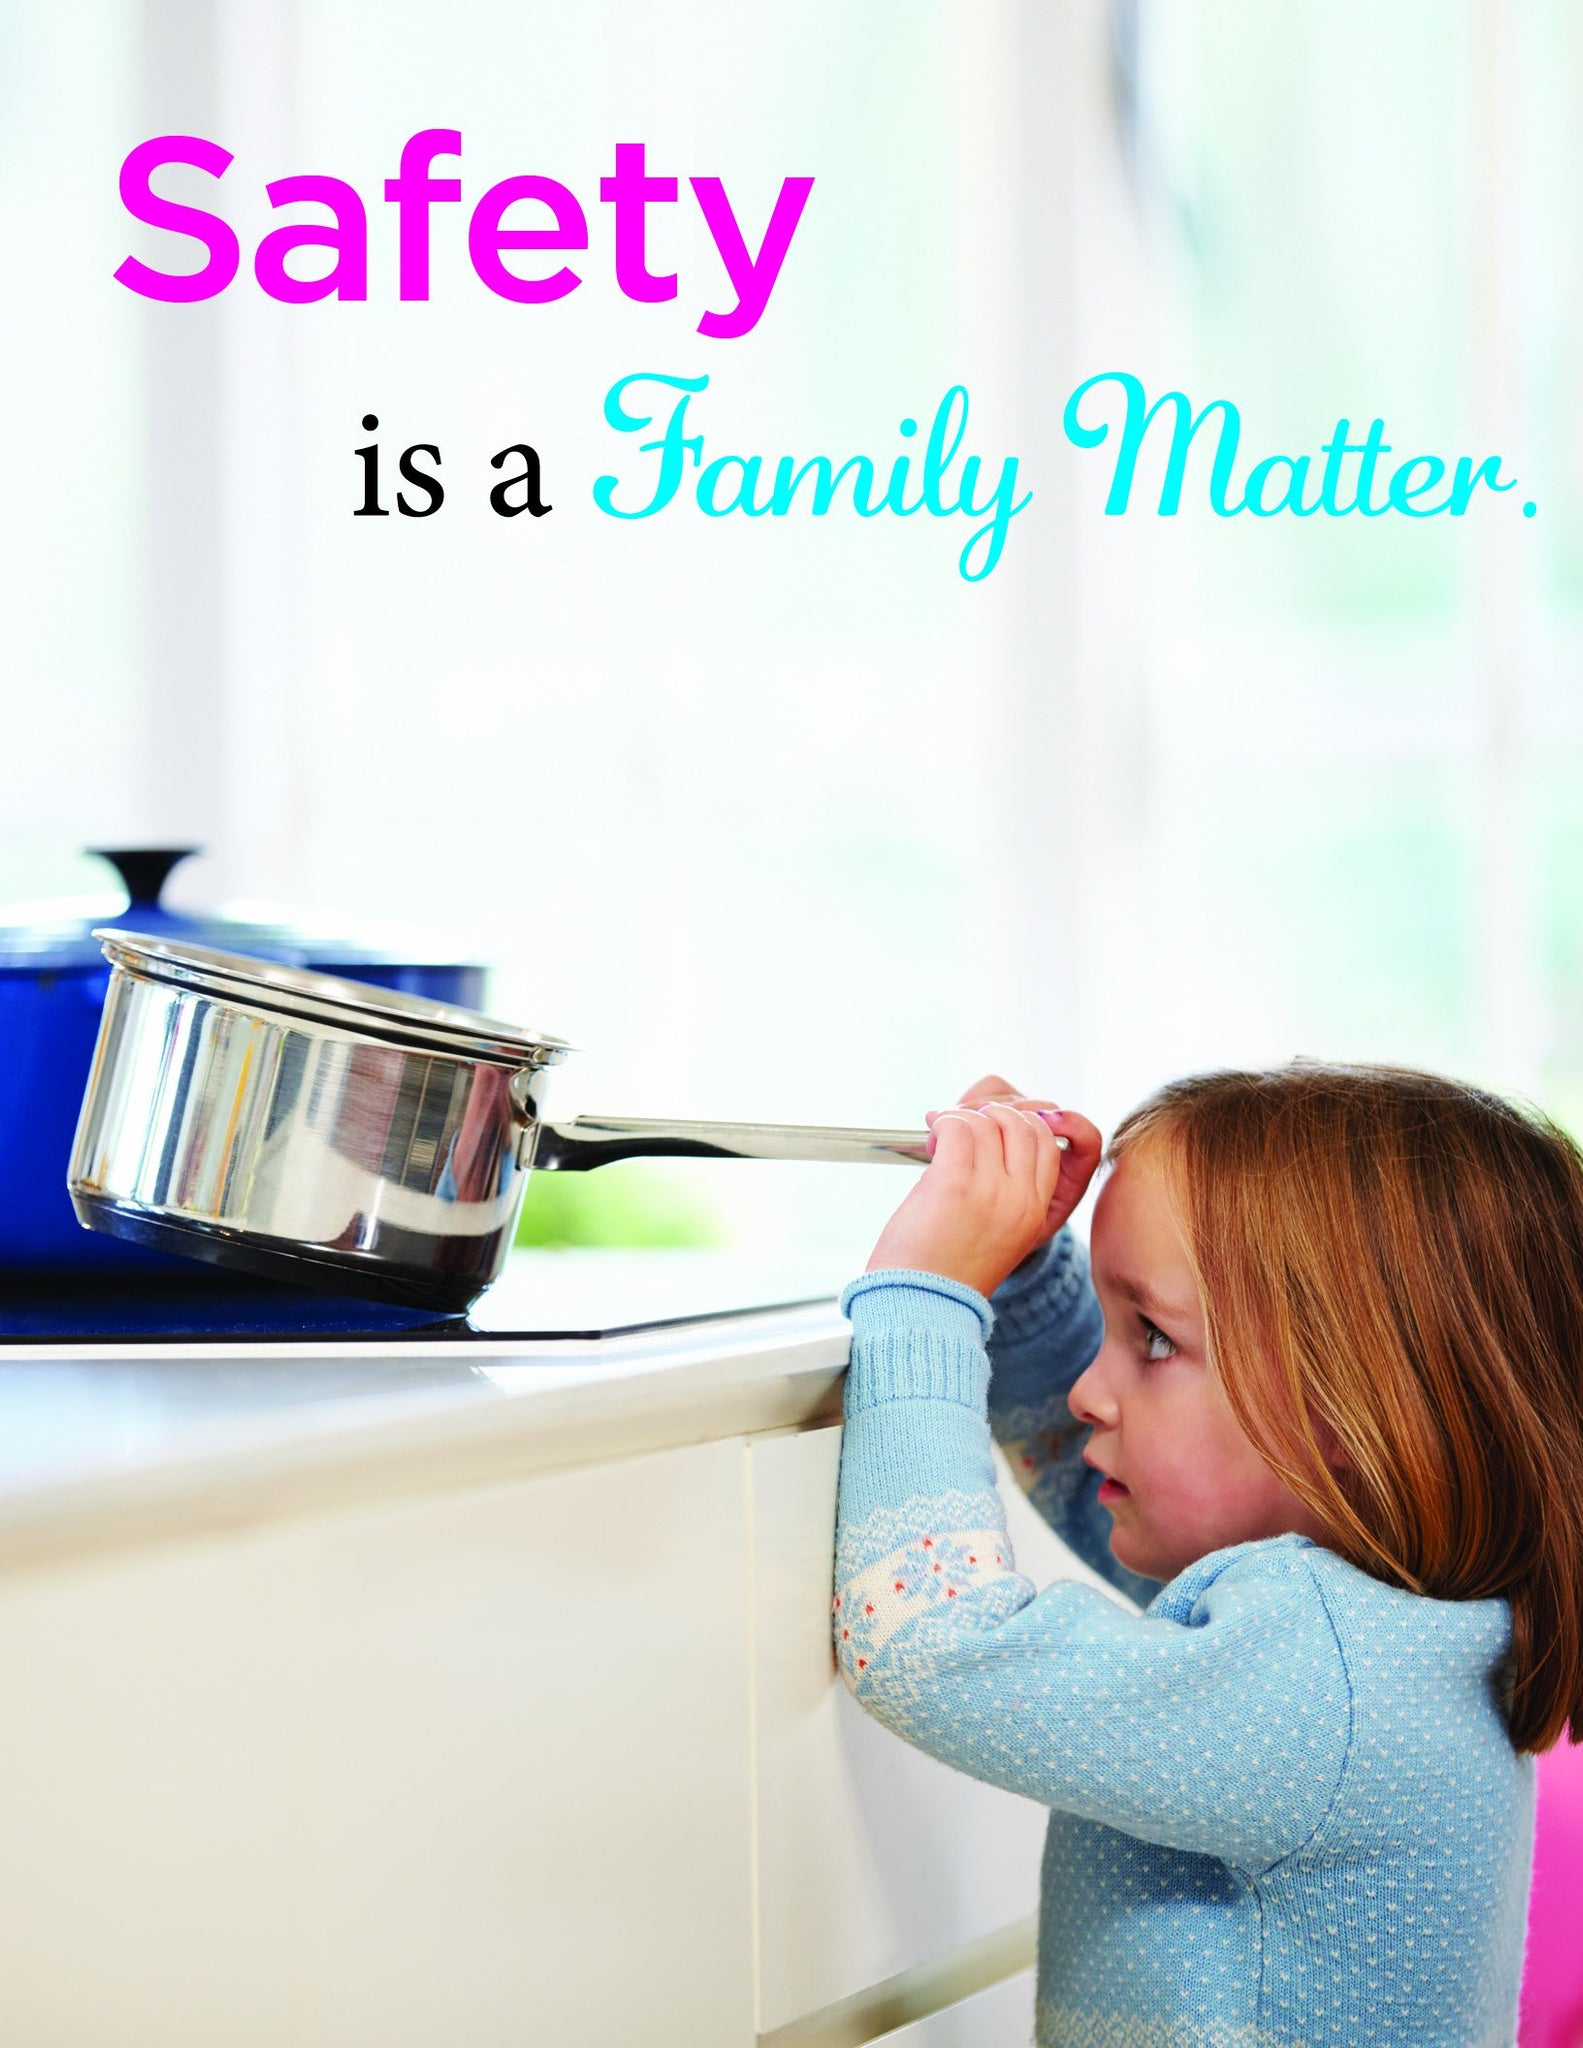 Safety Is A Family Matter - Poster New Posters Seasonal